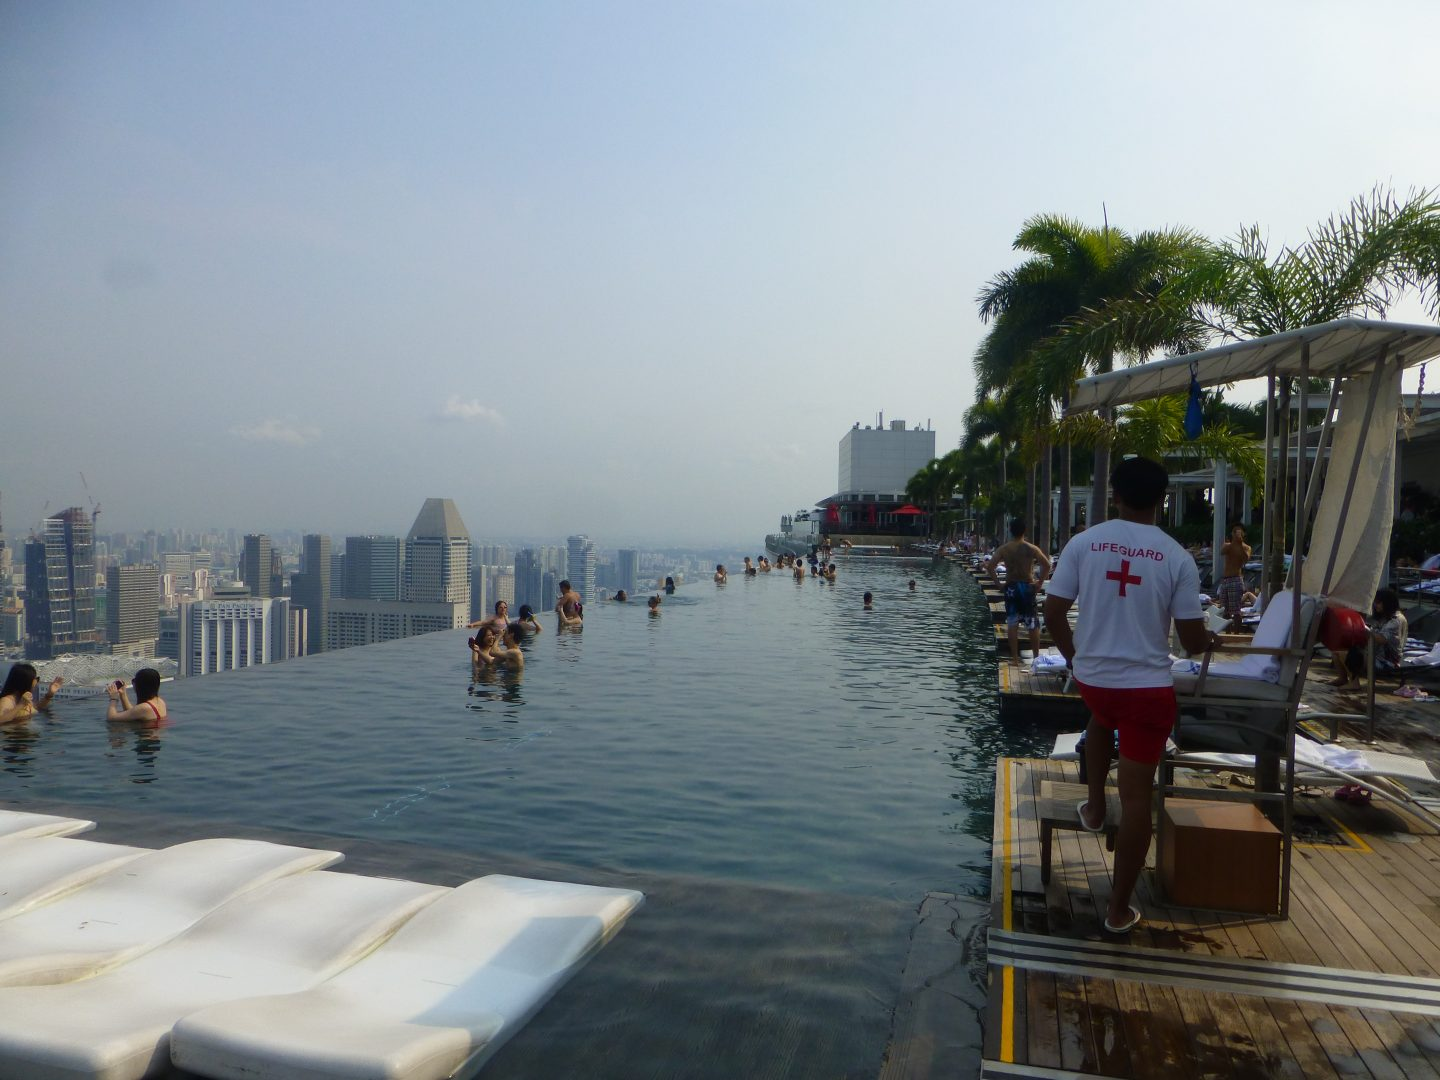 MARINA BAY SANDS INFINITY POOL AND SKYPARK